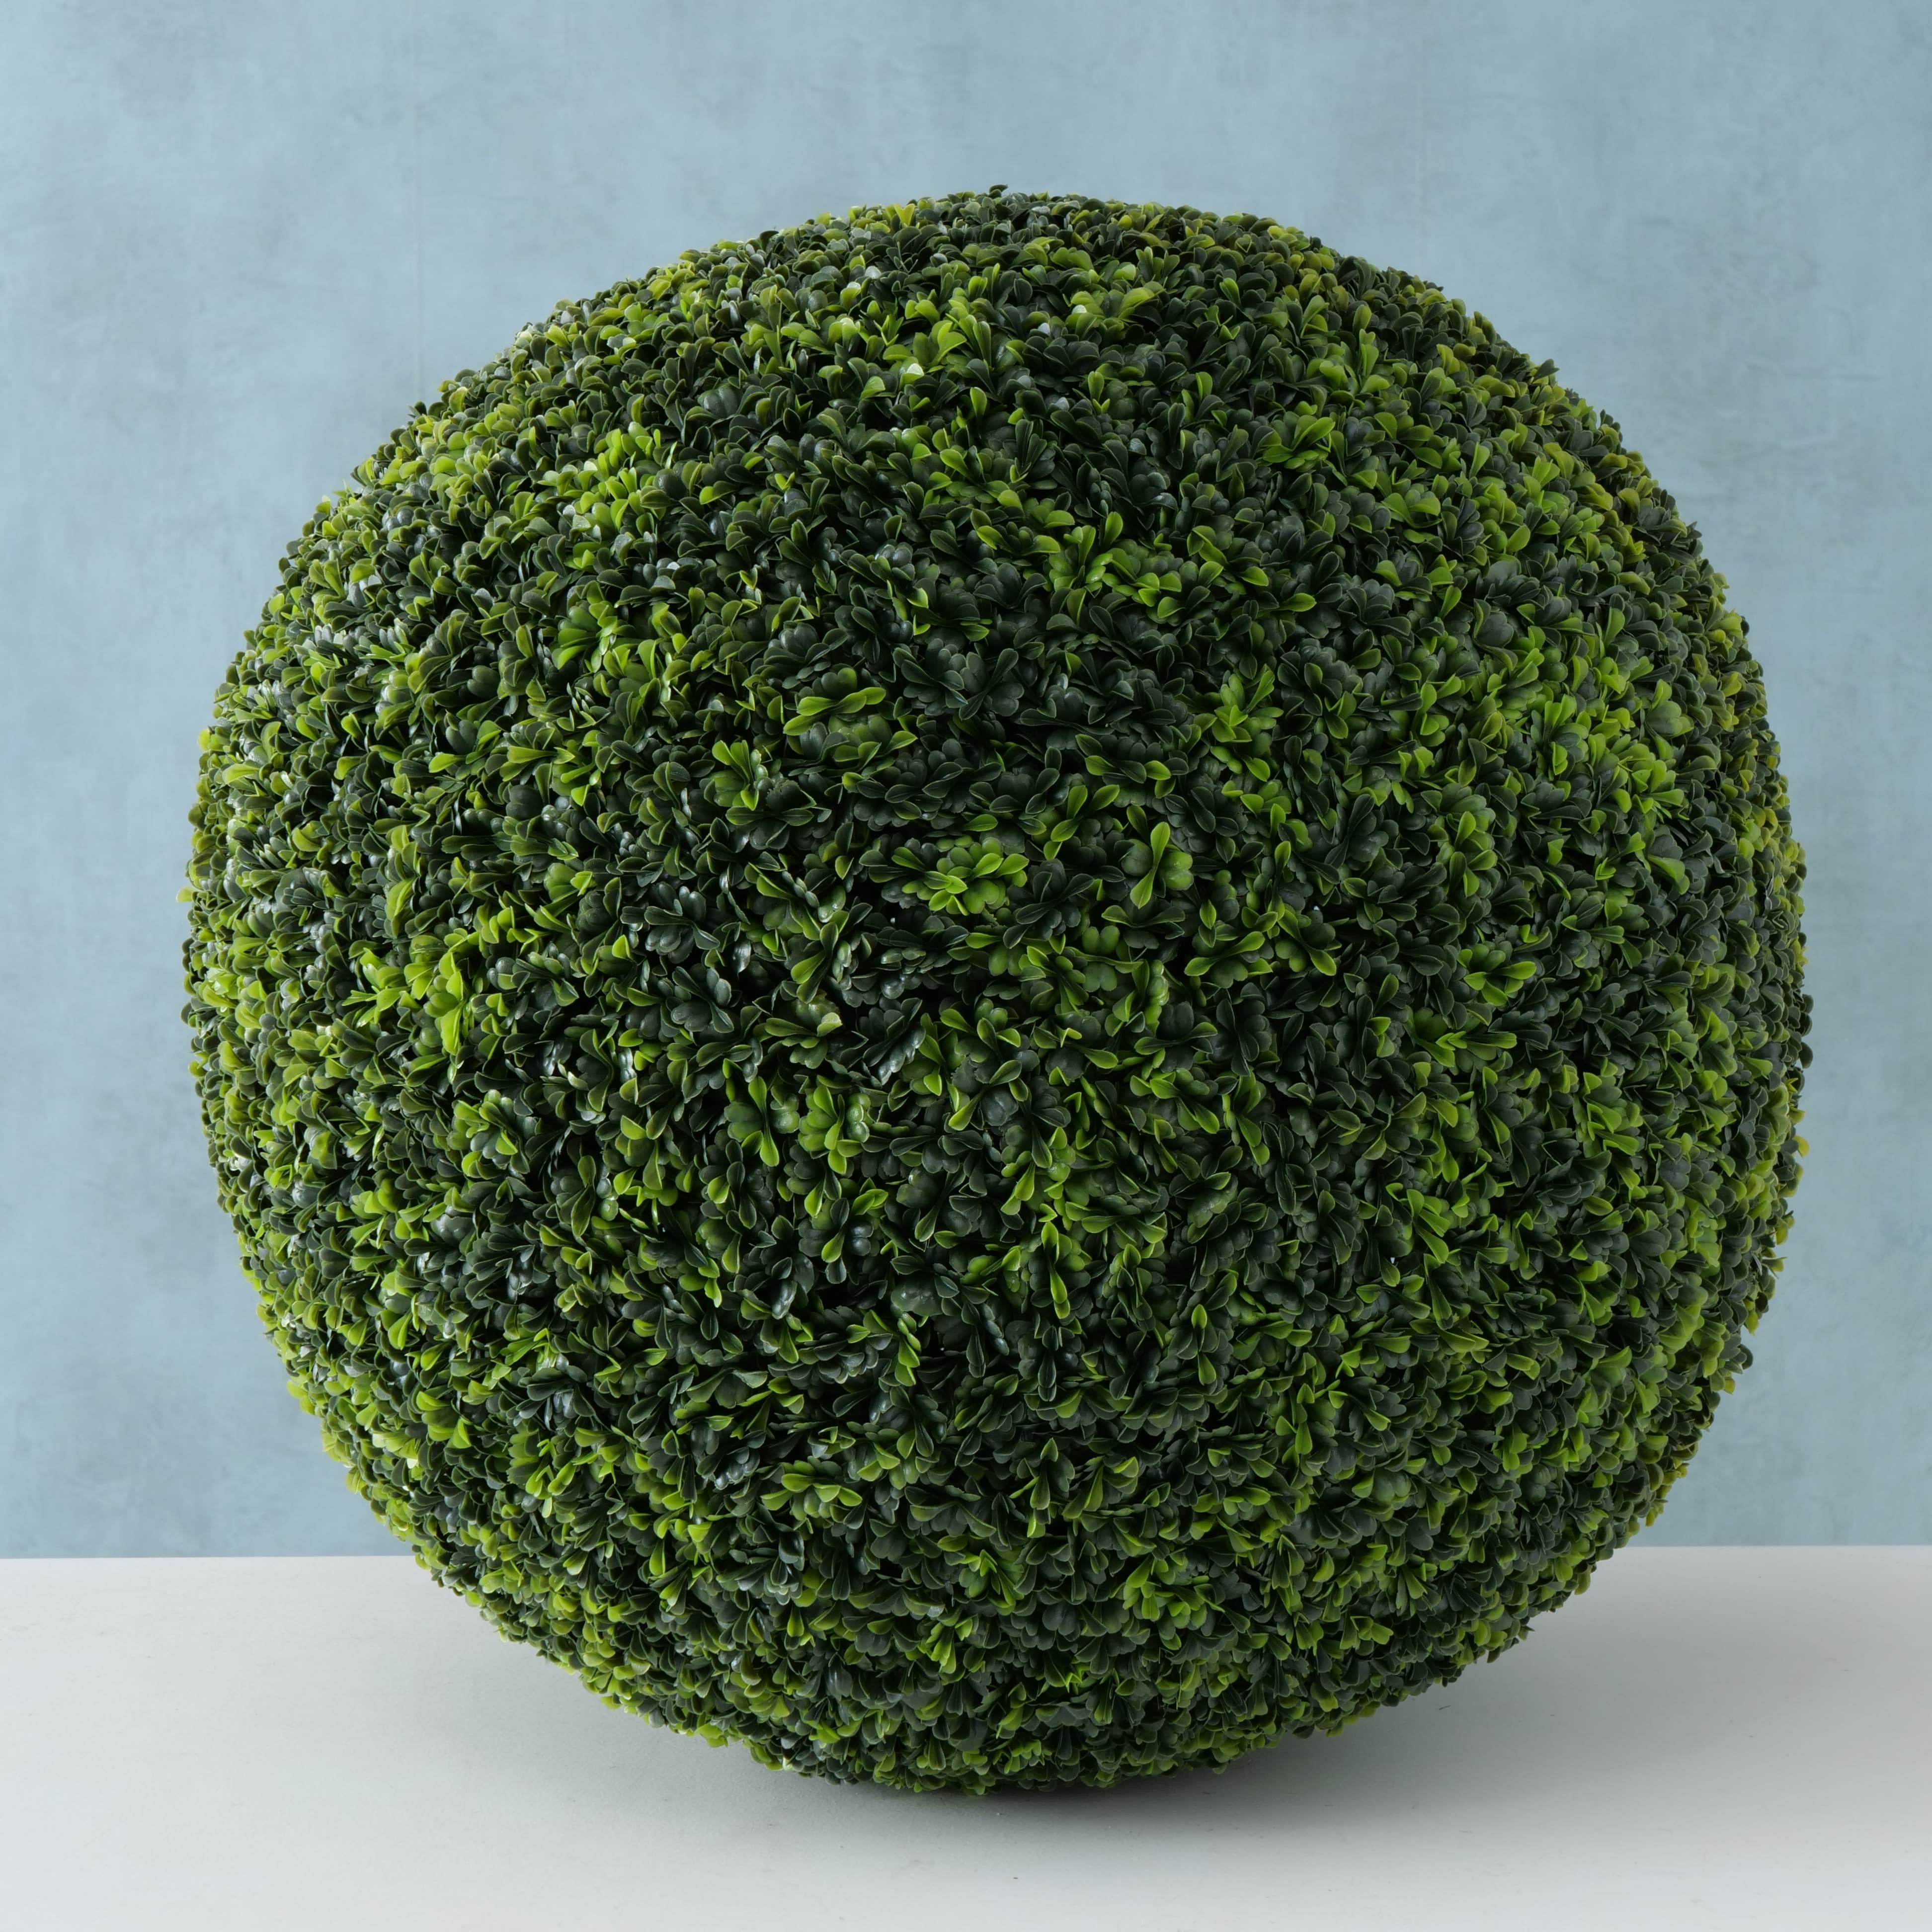 Planta artificiala Boxwood Verde, Ø50xH50 cm imagine